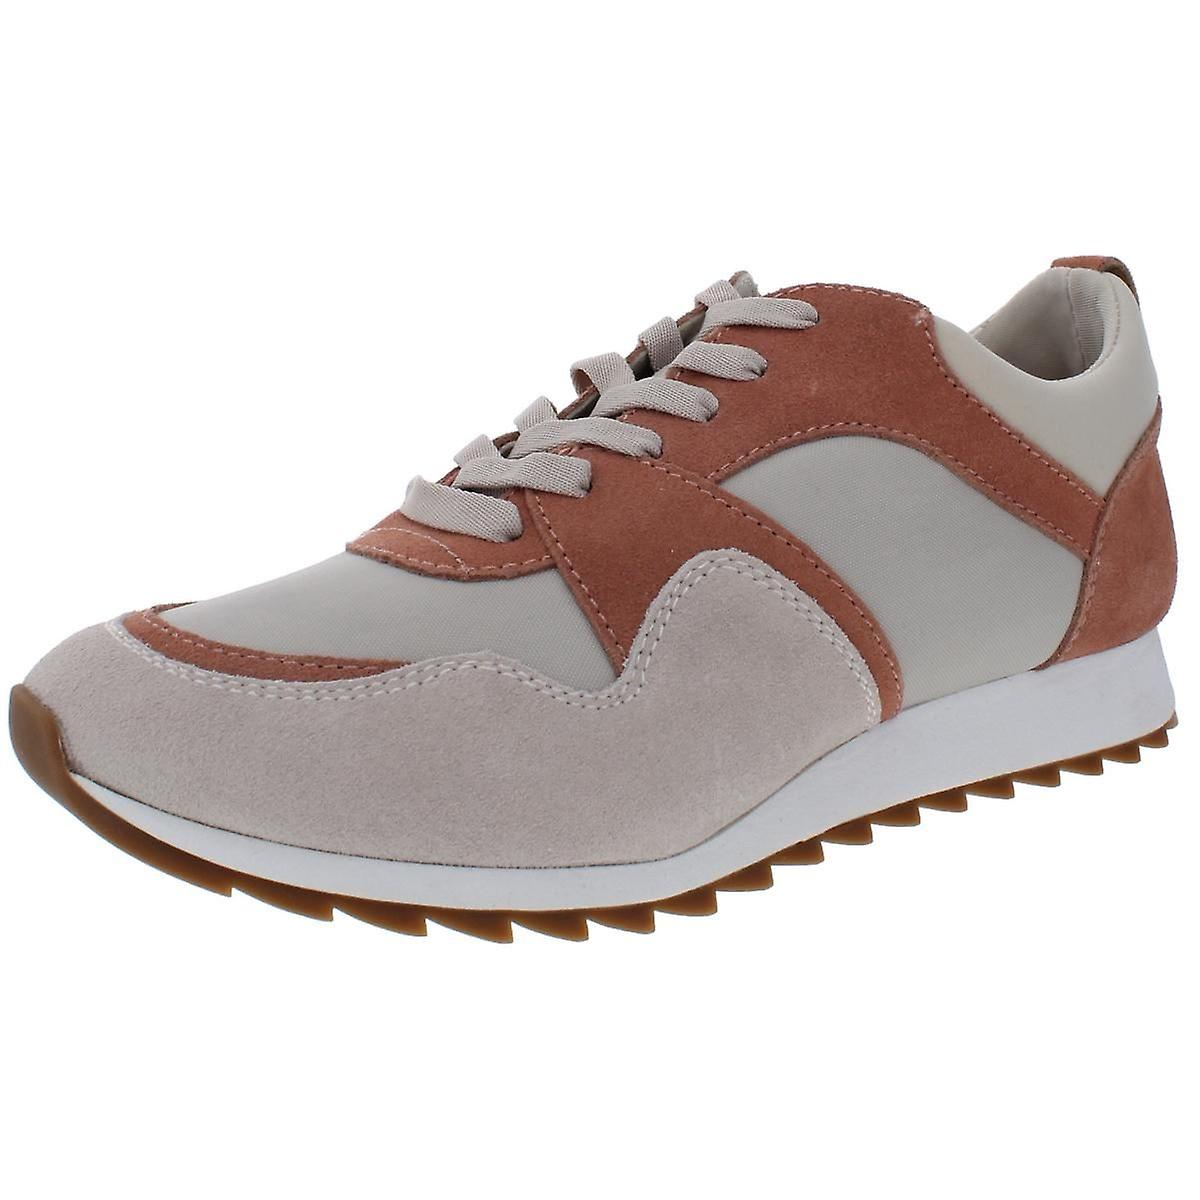 Ideologia Womens Gaffin Fabric Low Top Lace Up Fashion Sneakers mBxN6